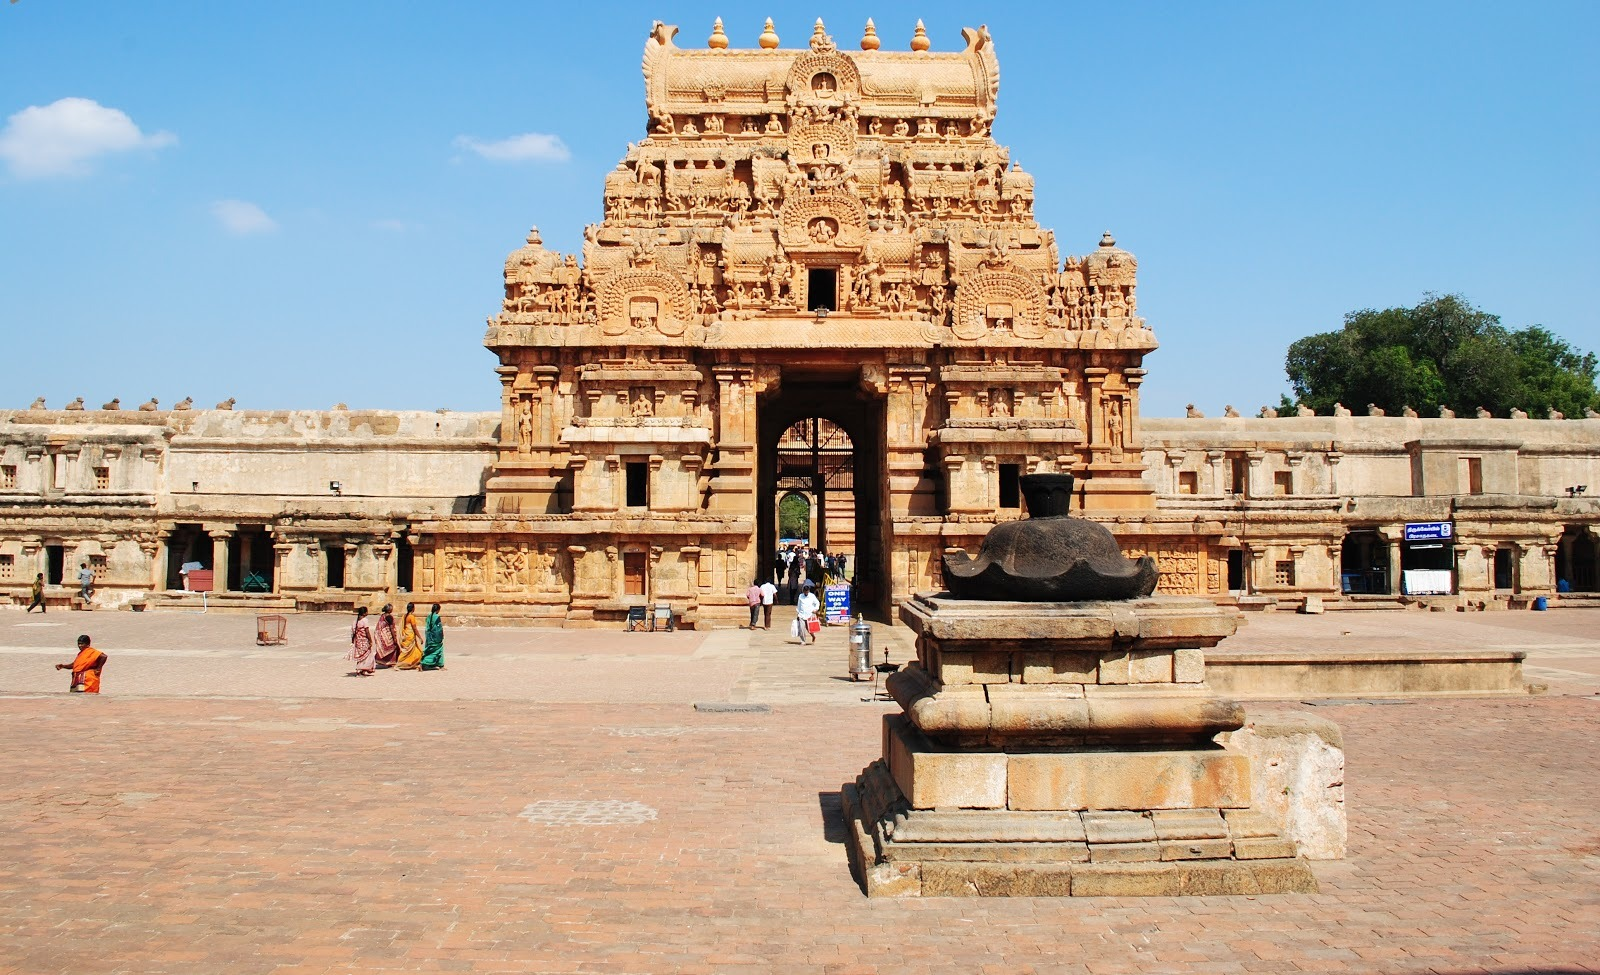 brihadeeswara temple essay Architectural history is incomplete without the studu of the very famous and the very big tanjore brihadeeswara temple here are some interesting facts about this temple.